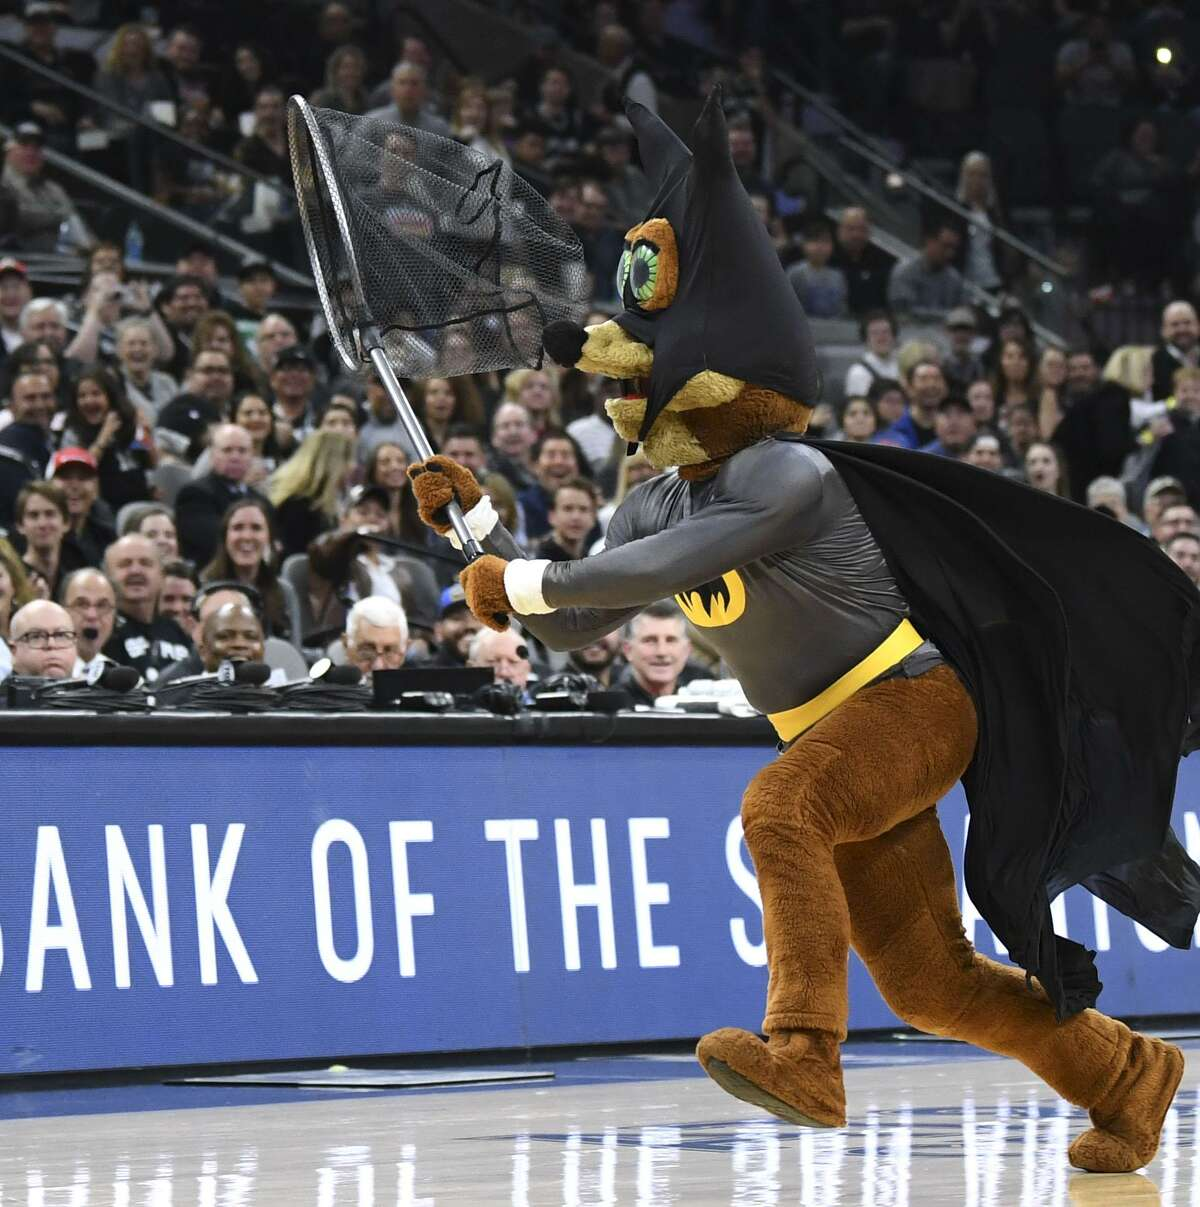 The Spurs Coyote catches a bat in a net during NBA action against the New Orleans Pelicans. in the AT&T Center on Saturday, Feb. 2, 2019. The flying mammals have been frequently spotted in the arena.